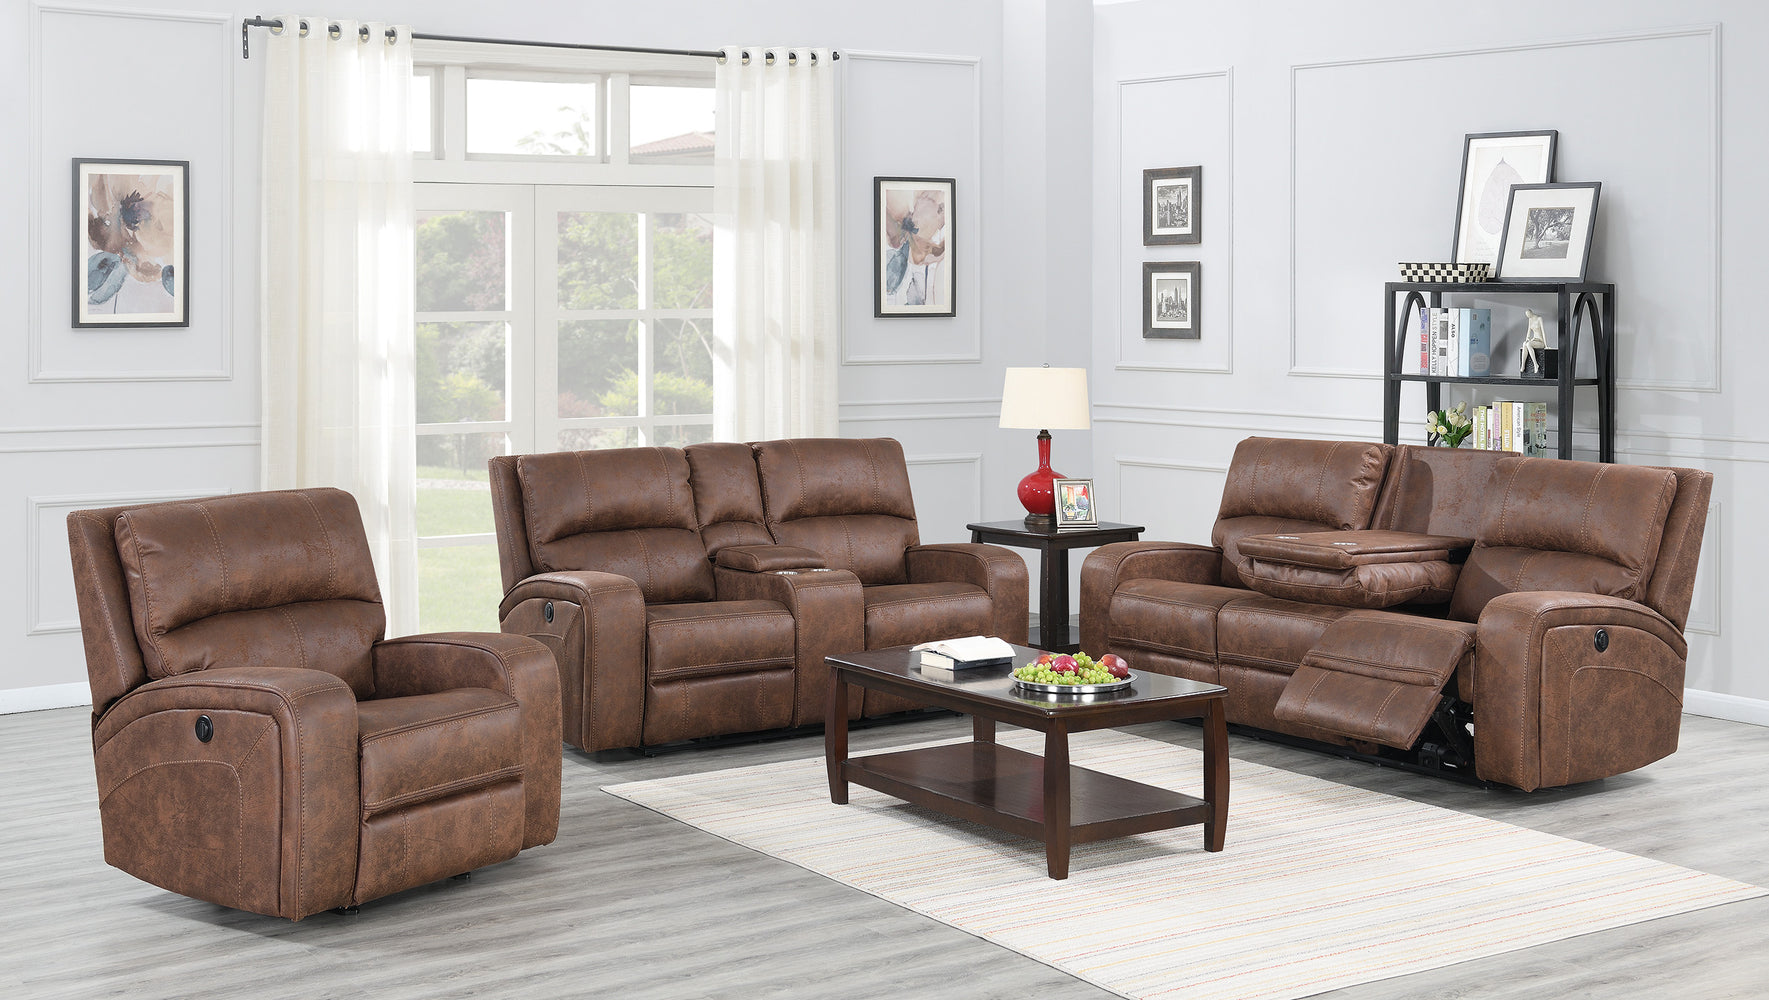 Perth Power Reclining Living Room Collection